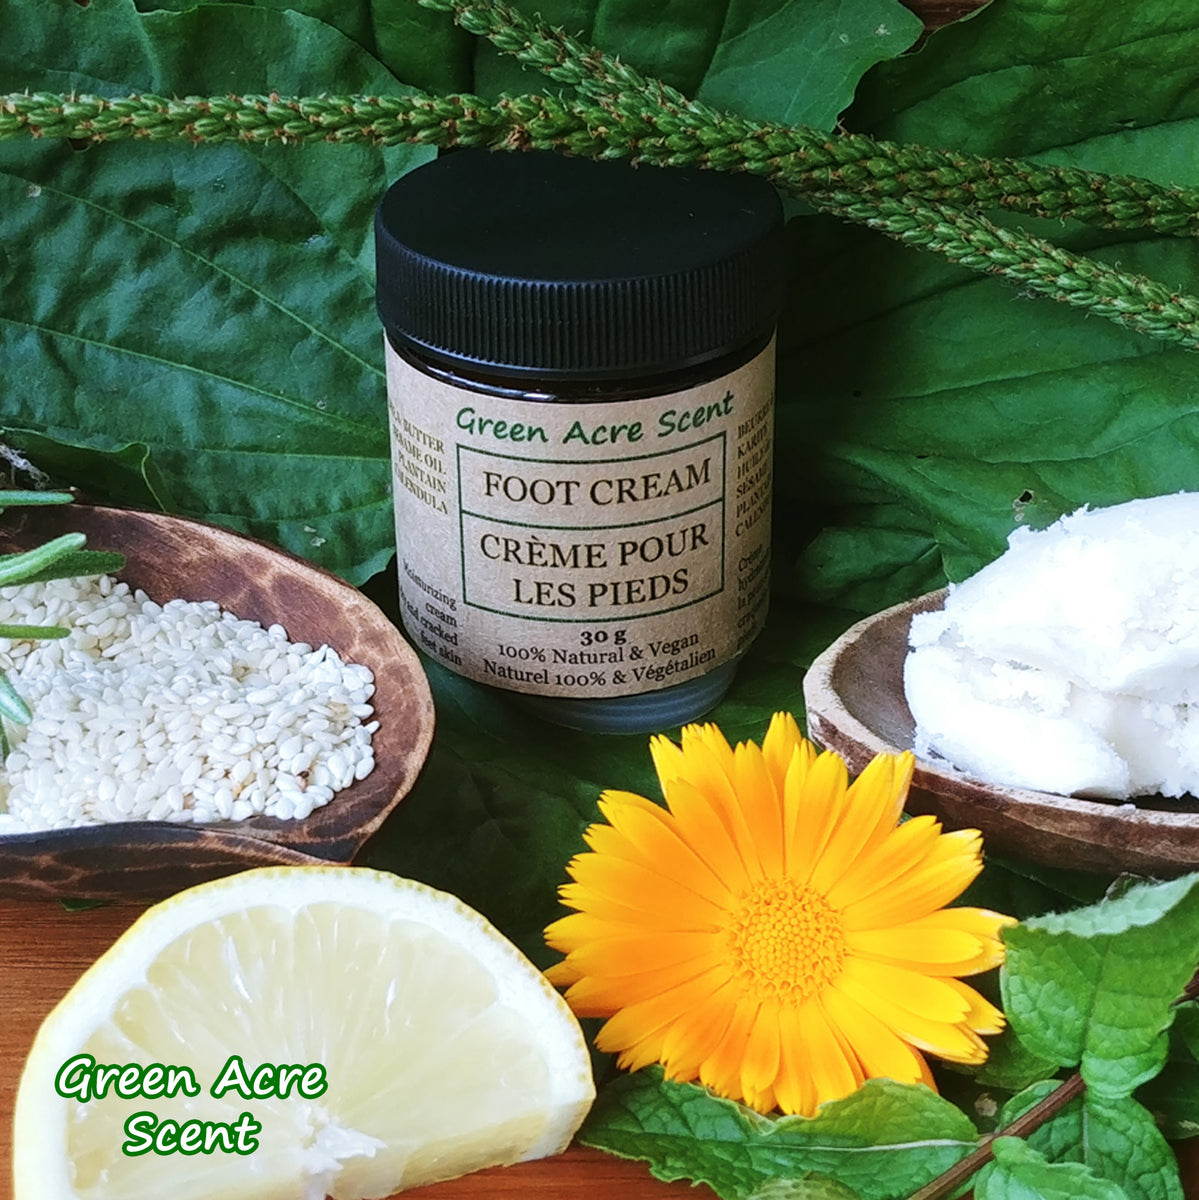 Foot Cream New Product Release Green Acre Scent Bd